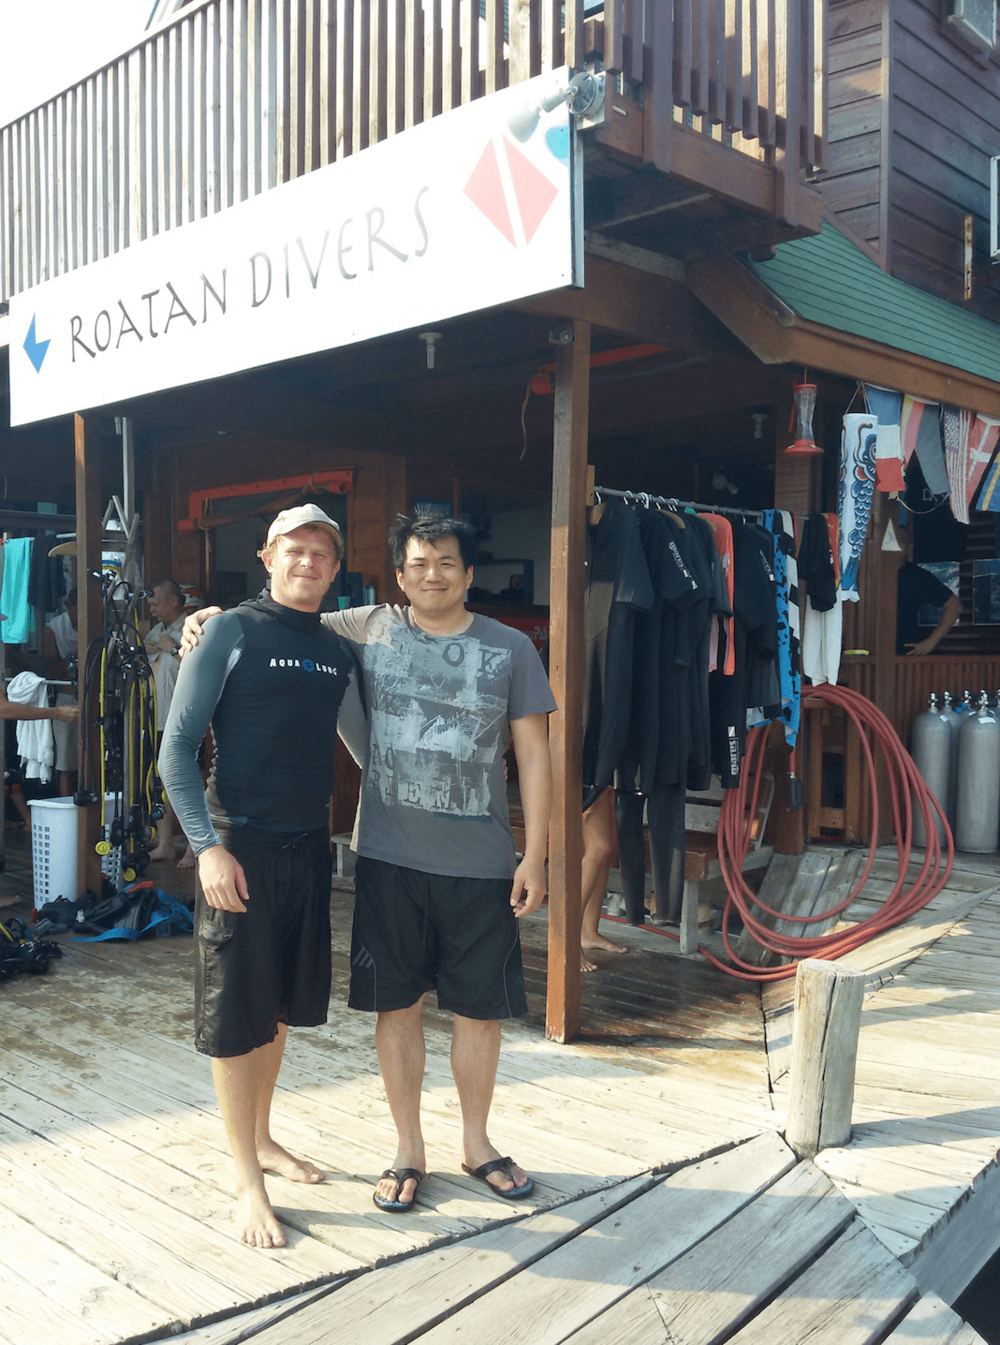 try scuba diving Roatan Divers